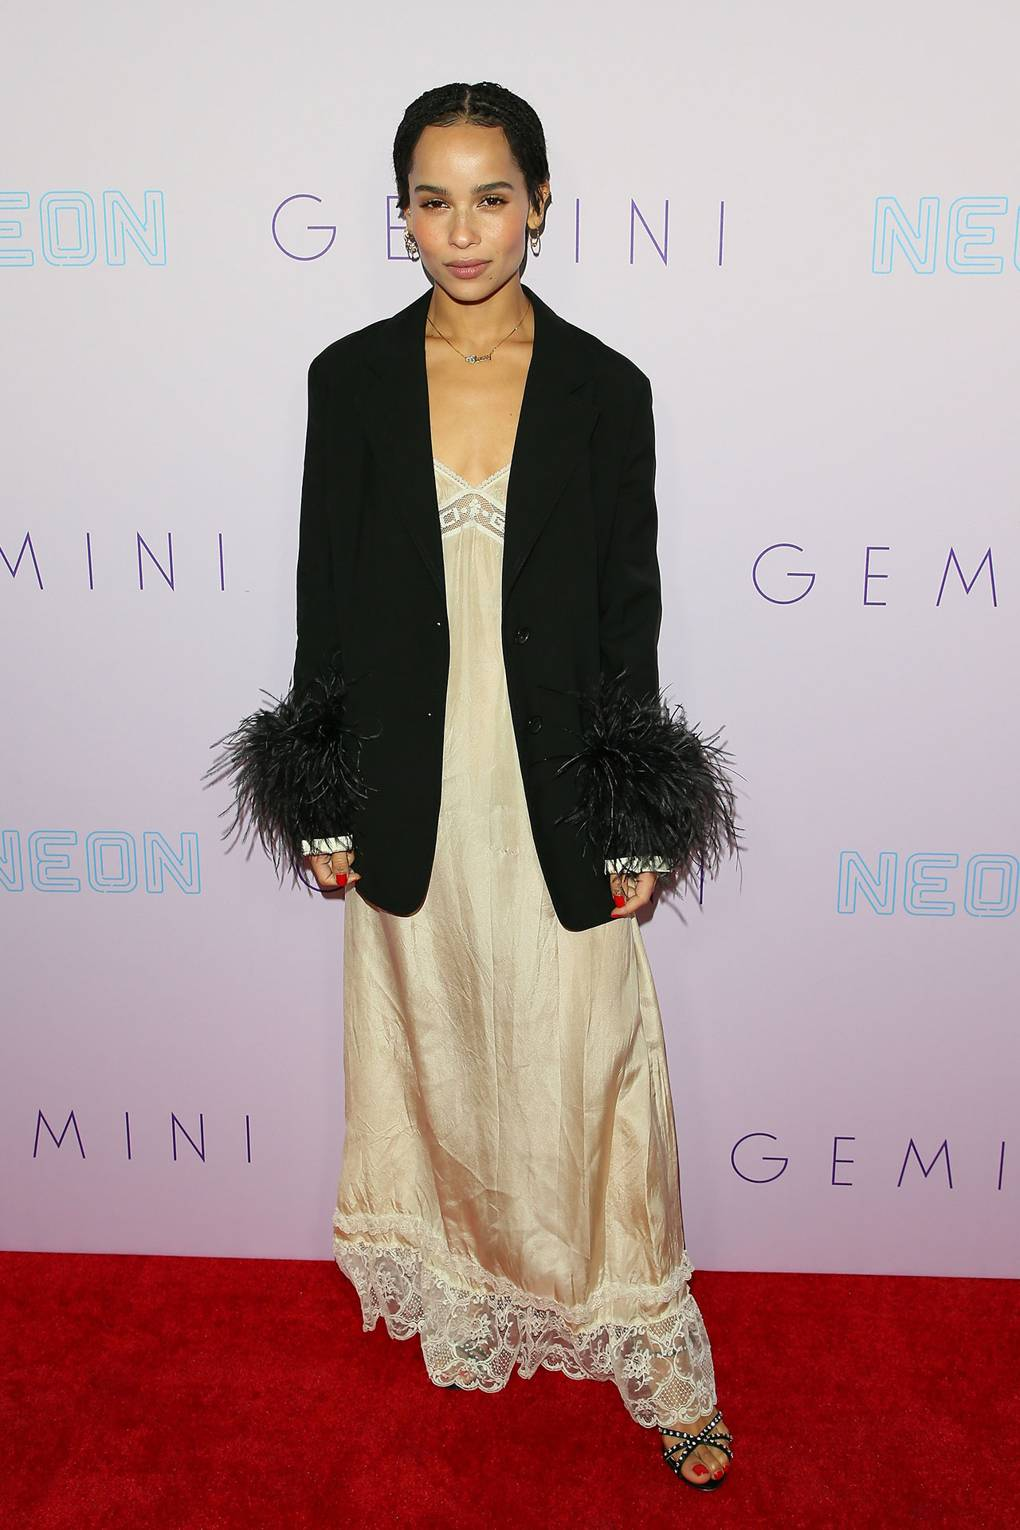 Zoë Kravitz in LA. Photo via Getty Images